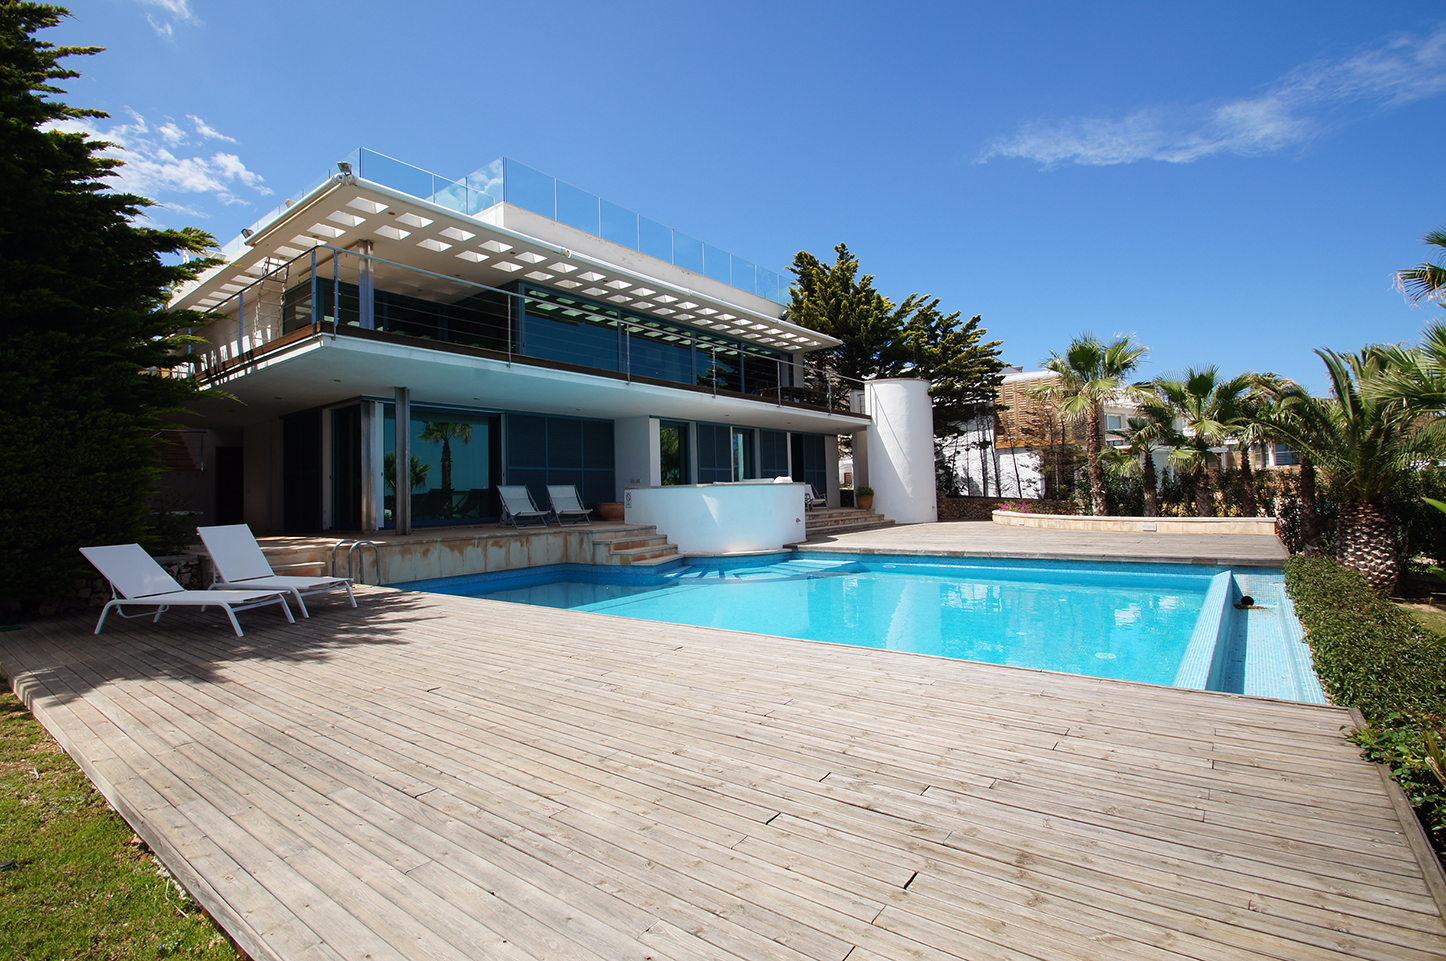 Villa holidays 2020 in Menorca